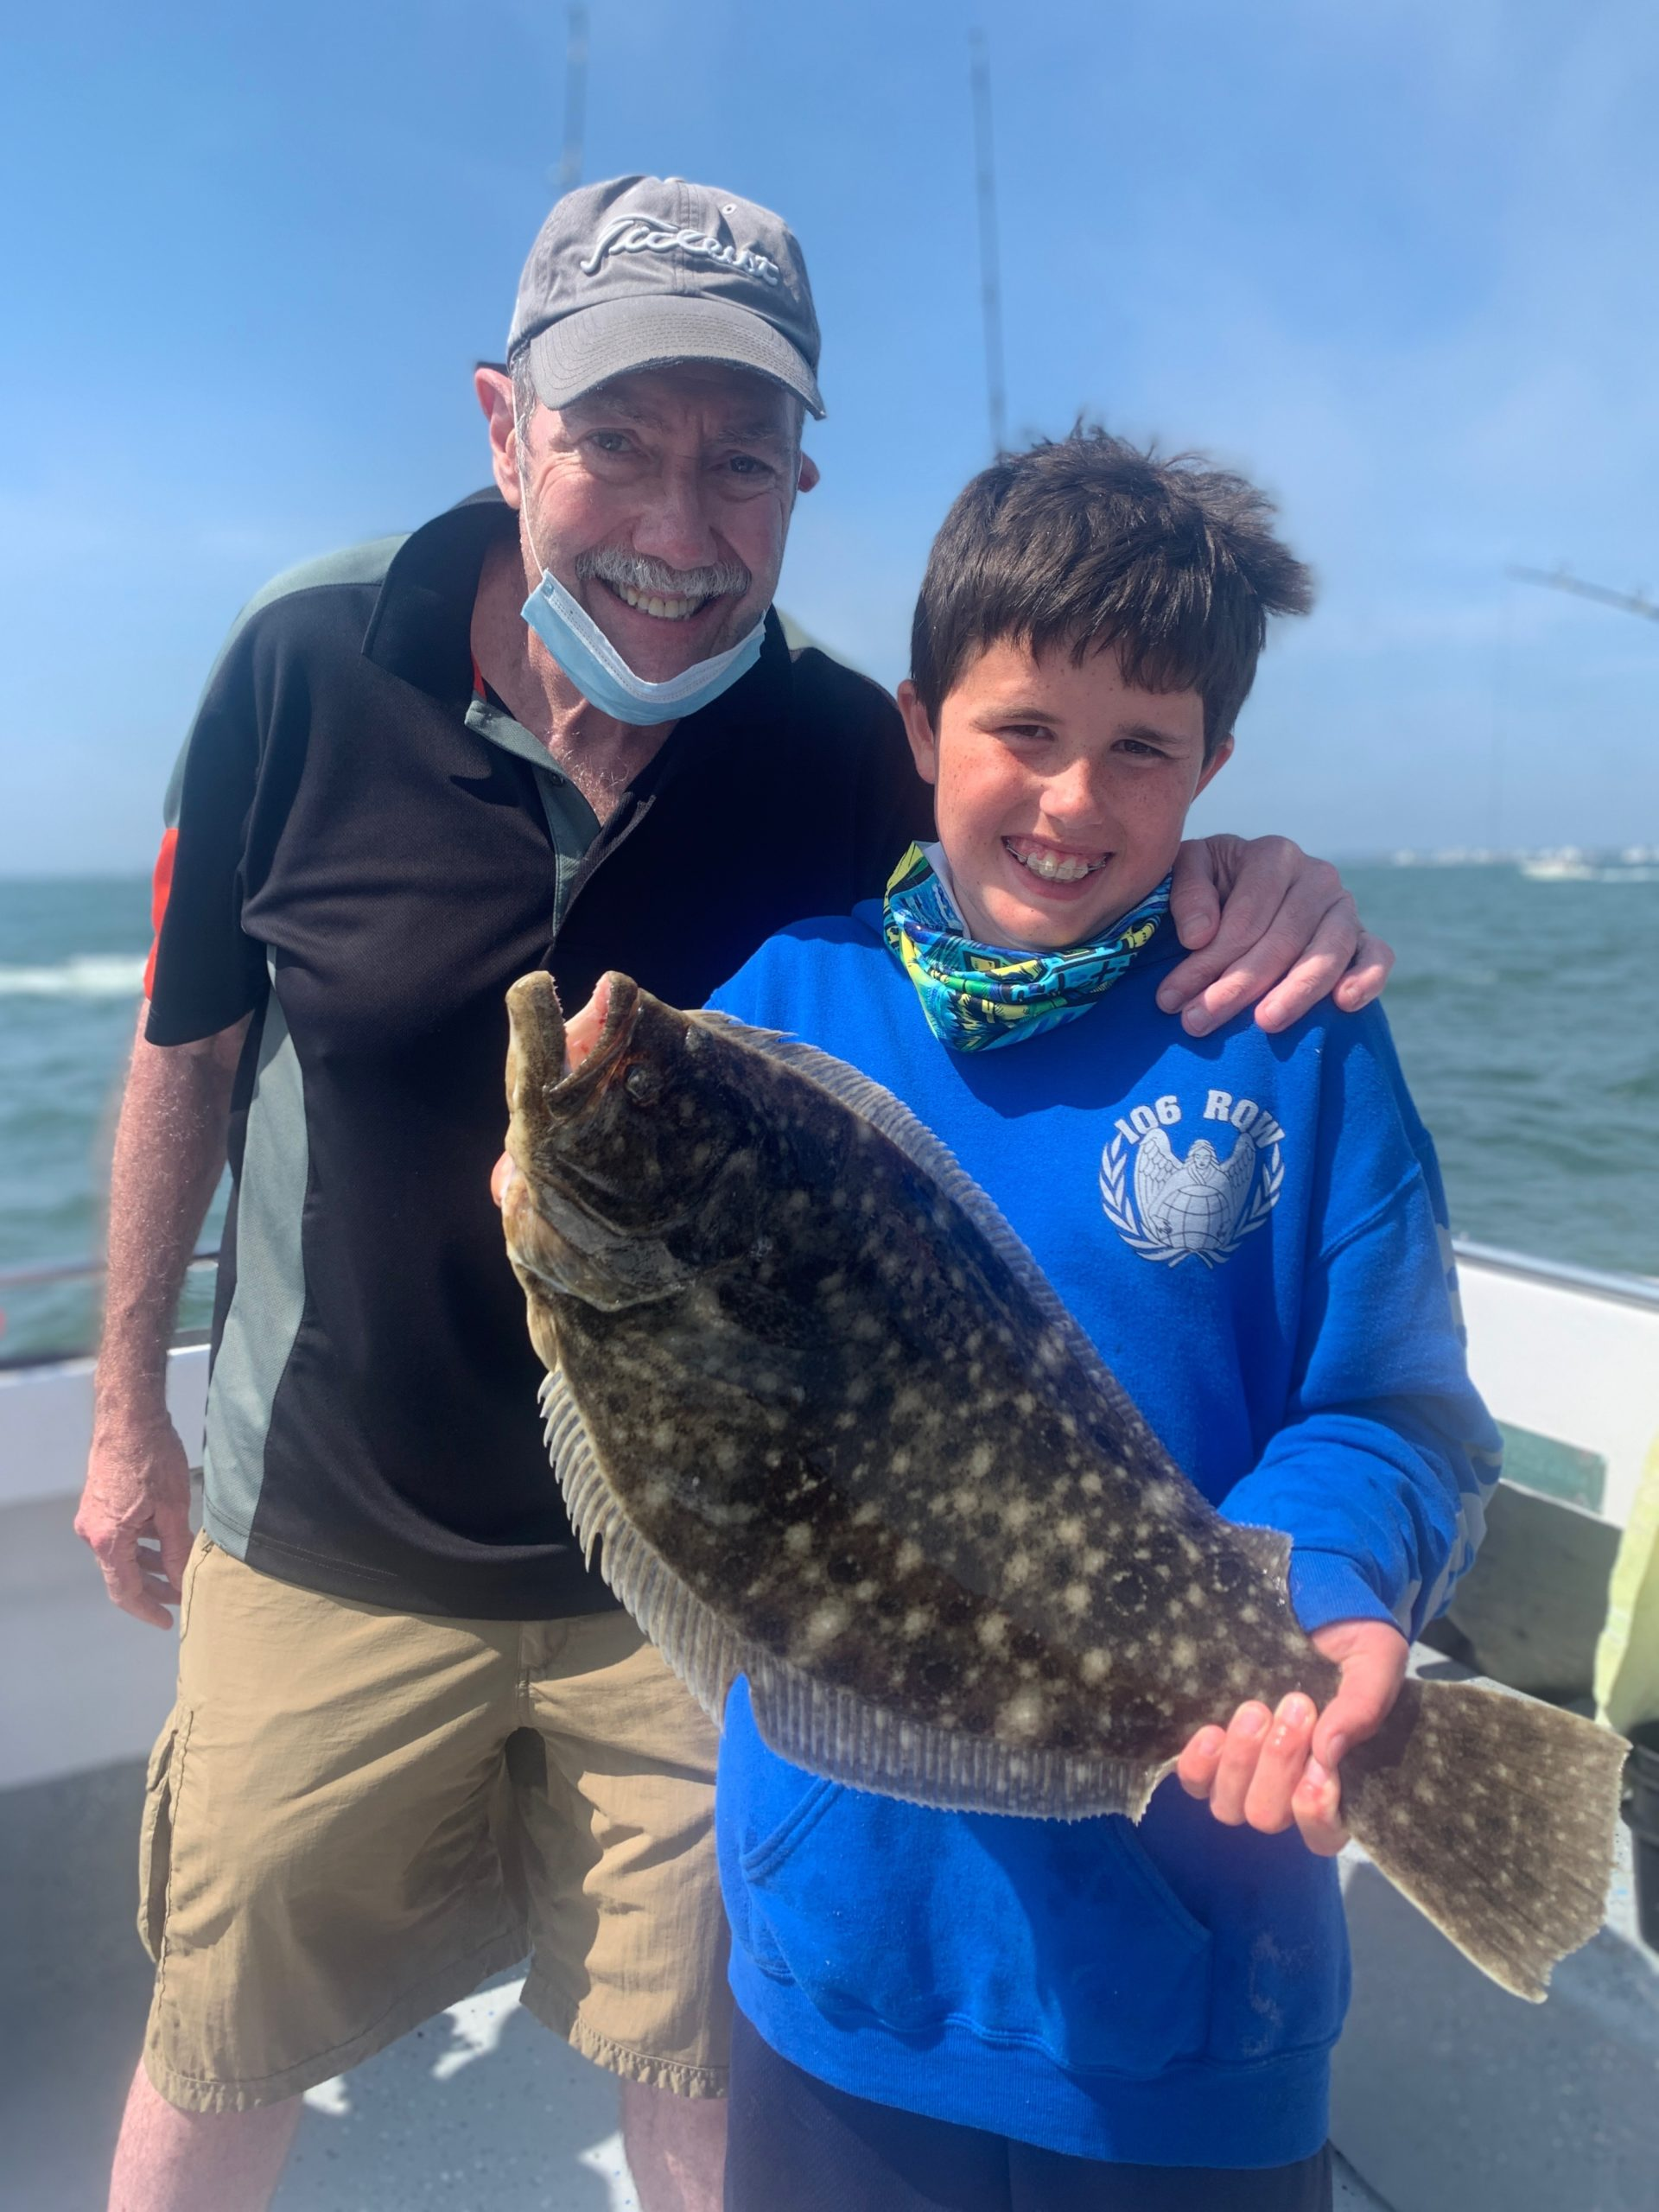 Kevin Kelly and his grandpa, John Spears, got in some fluke fishing aboard the Shinnecock Star recently.